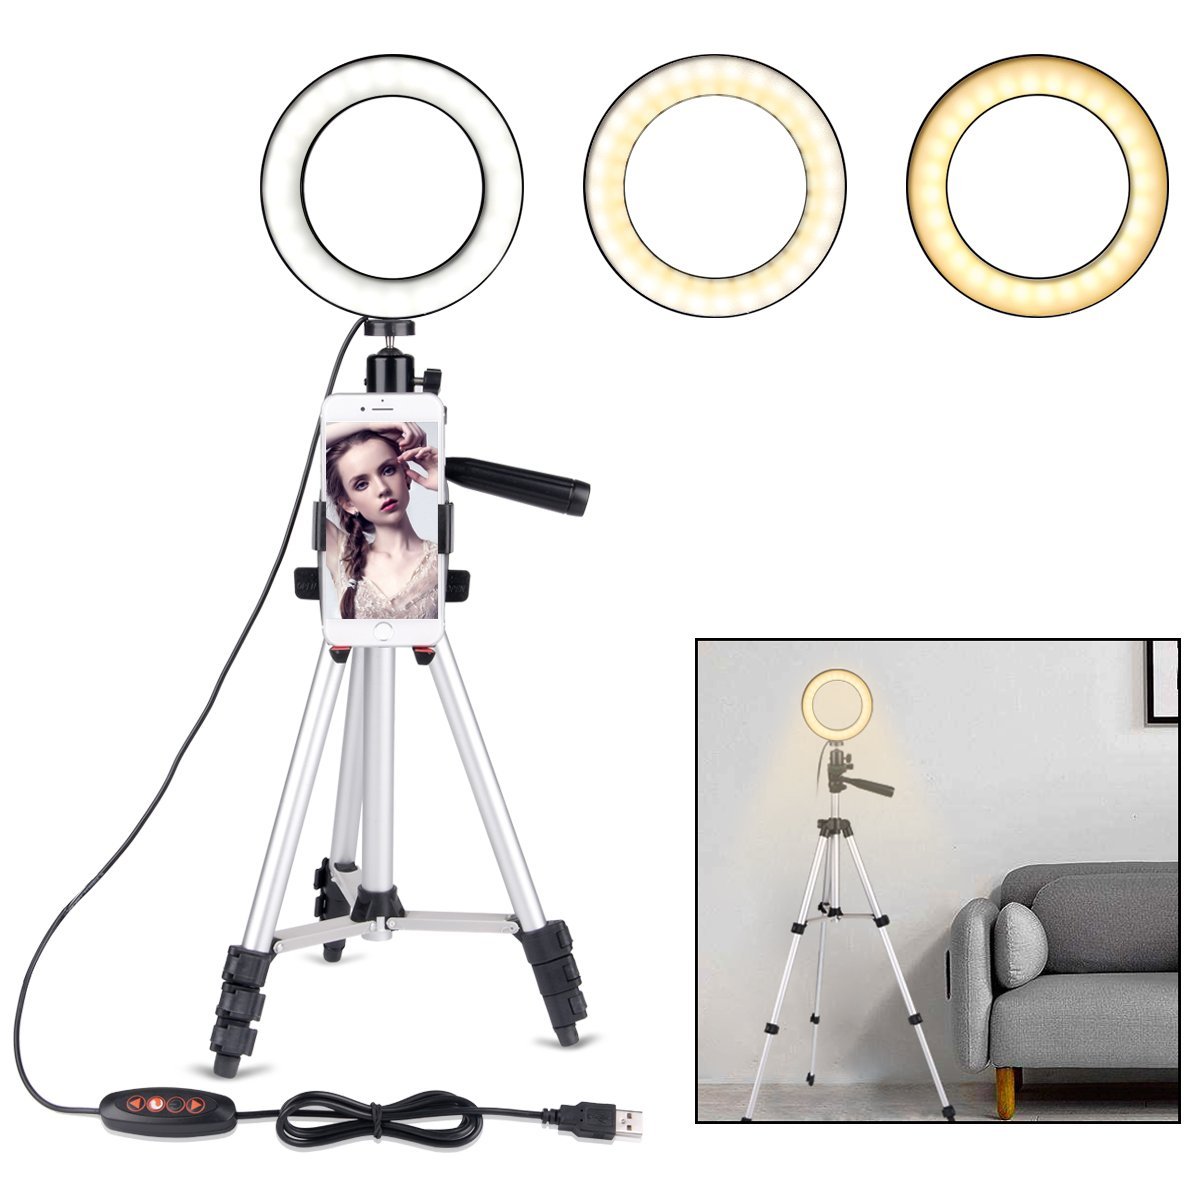 B-Land 5.7'' Ring Light with Tripod Stand for YouTube Video and Makeup, Mini LED Camera Light with Cell Phone Holder Desktop LED Lamp with 3 Light Modes & 11 Brightness Level by B-Land